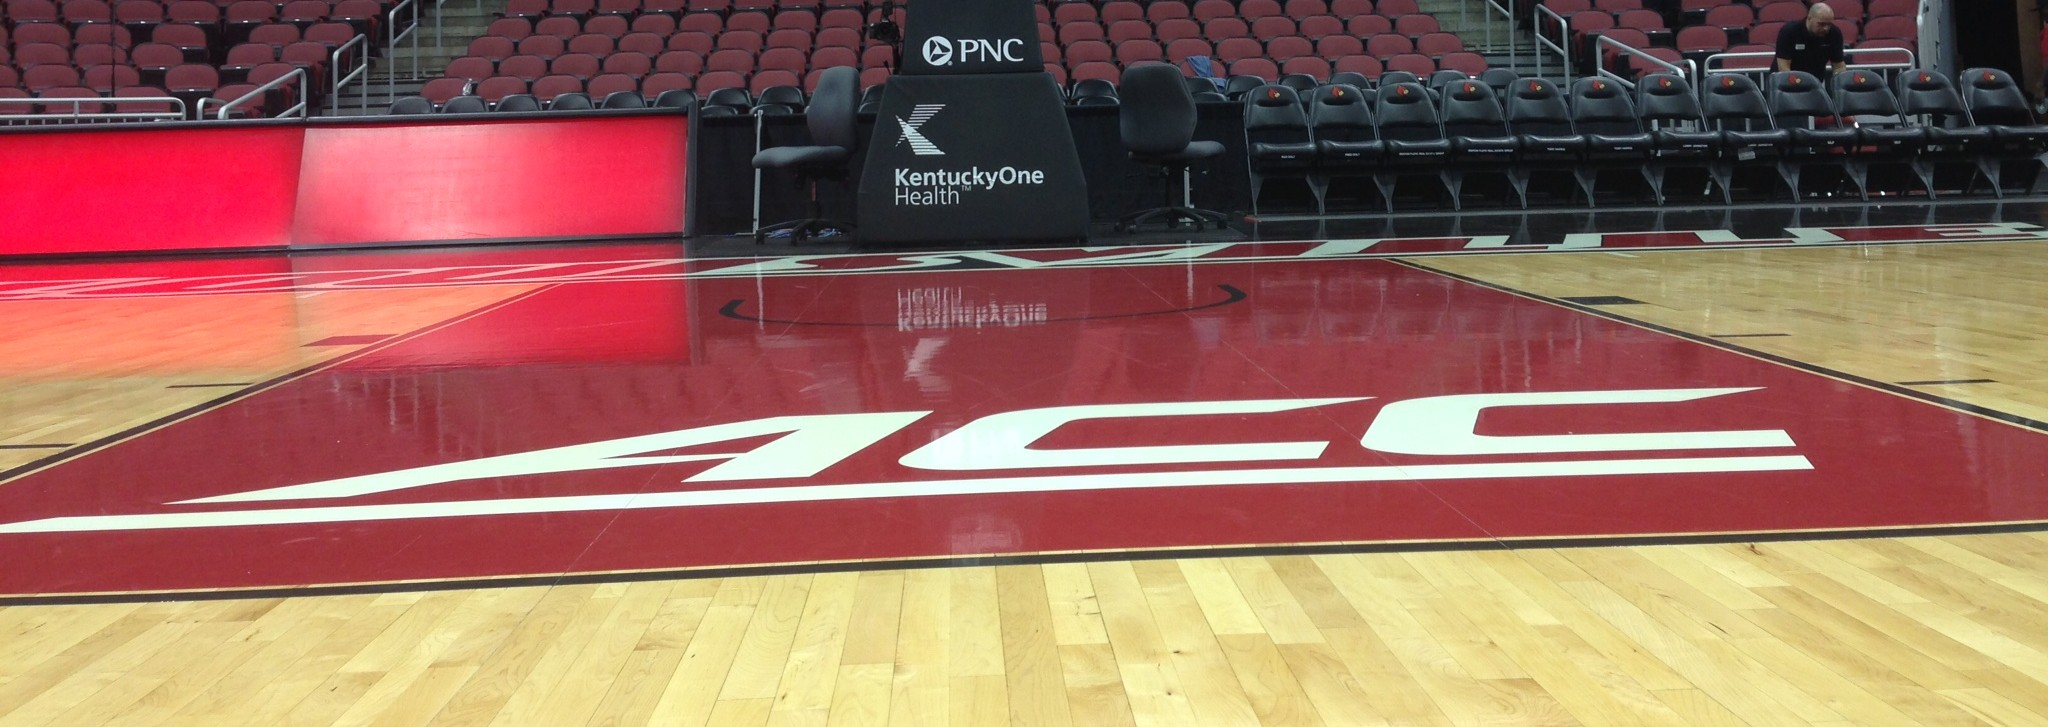 Louisville Basketball Yum! Center Floor Fiited Photo by Mark Blankenbaker Fitted